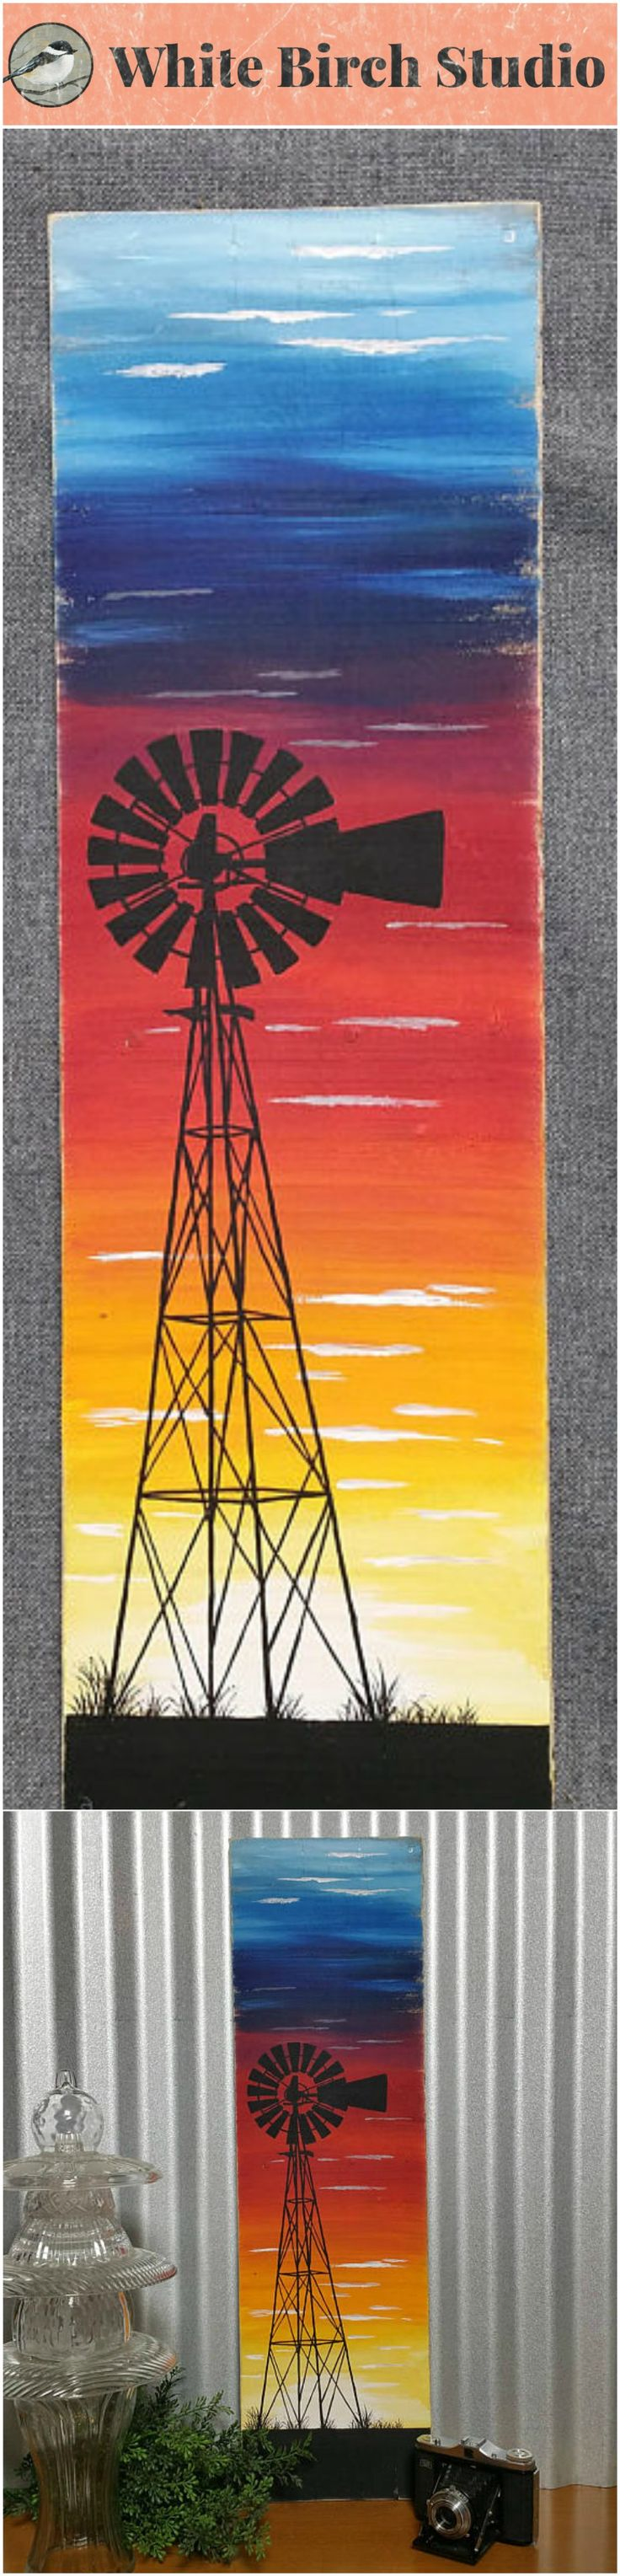 Windmill sunset painting, pallet wall art, sunset art, Silhouette windmill art, reclaimed wood decor, handmade art, distressed   Have you been looking for that one unique piece of artwork that just catches your eye?  Original Acrylic painting on a single large piece of reclaimed pallet. The edges are lightly sanded for an aged appearance.  This unique piece is 30 in tall x 9 in wide.